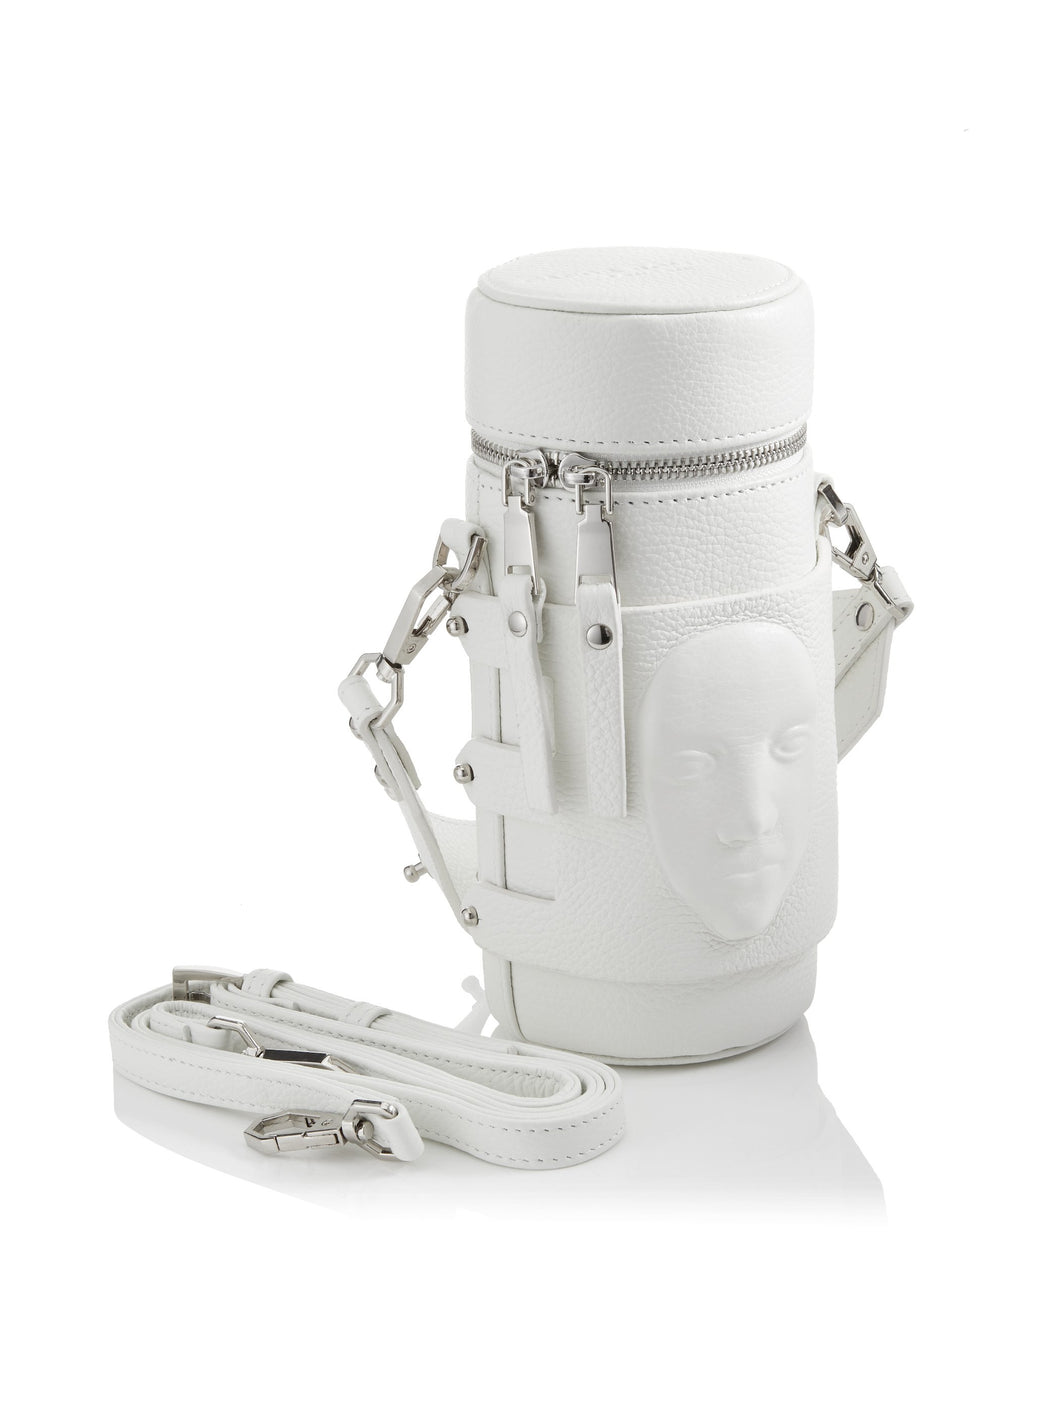 Bucket Bag White